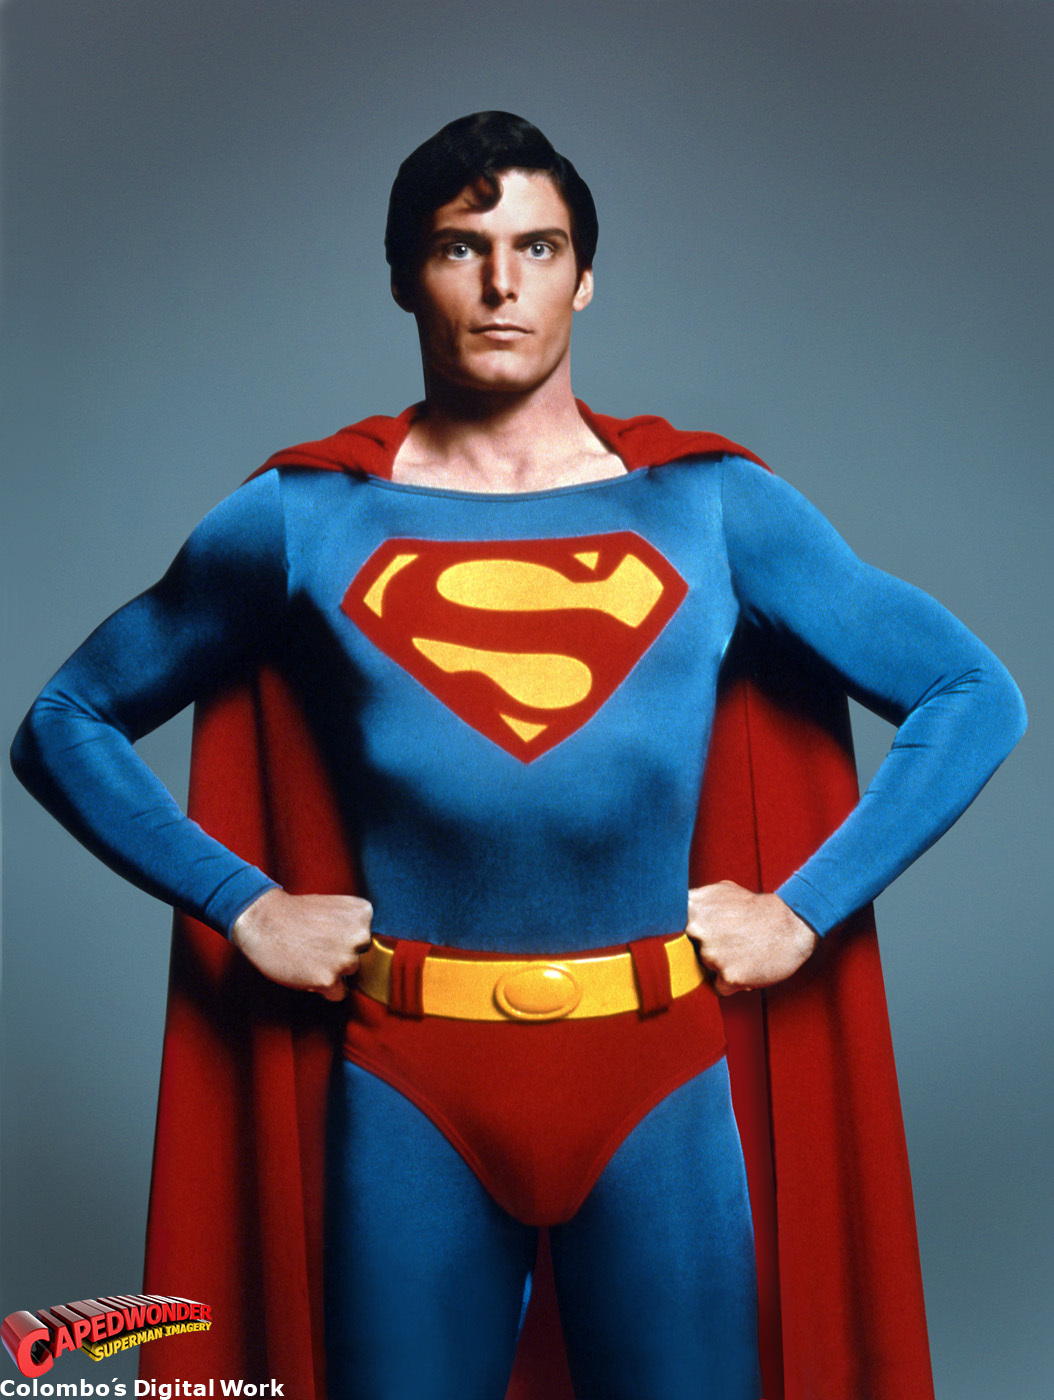 Superman The Movie Images Publicity Photo Hd Wallpaper